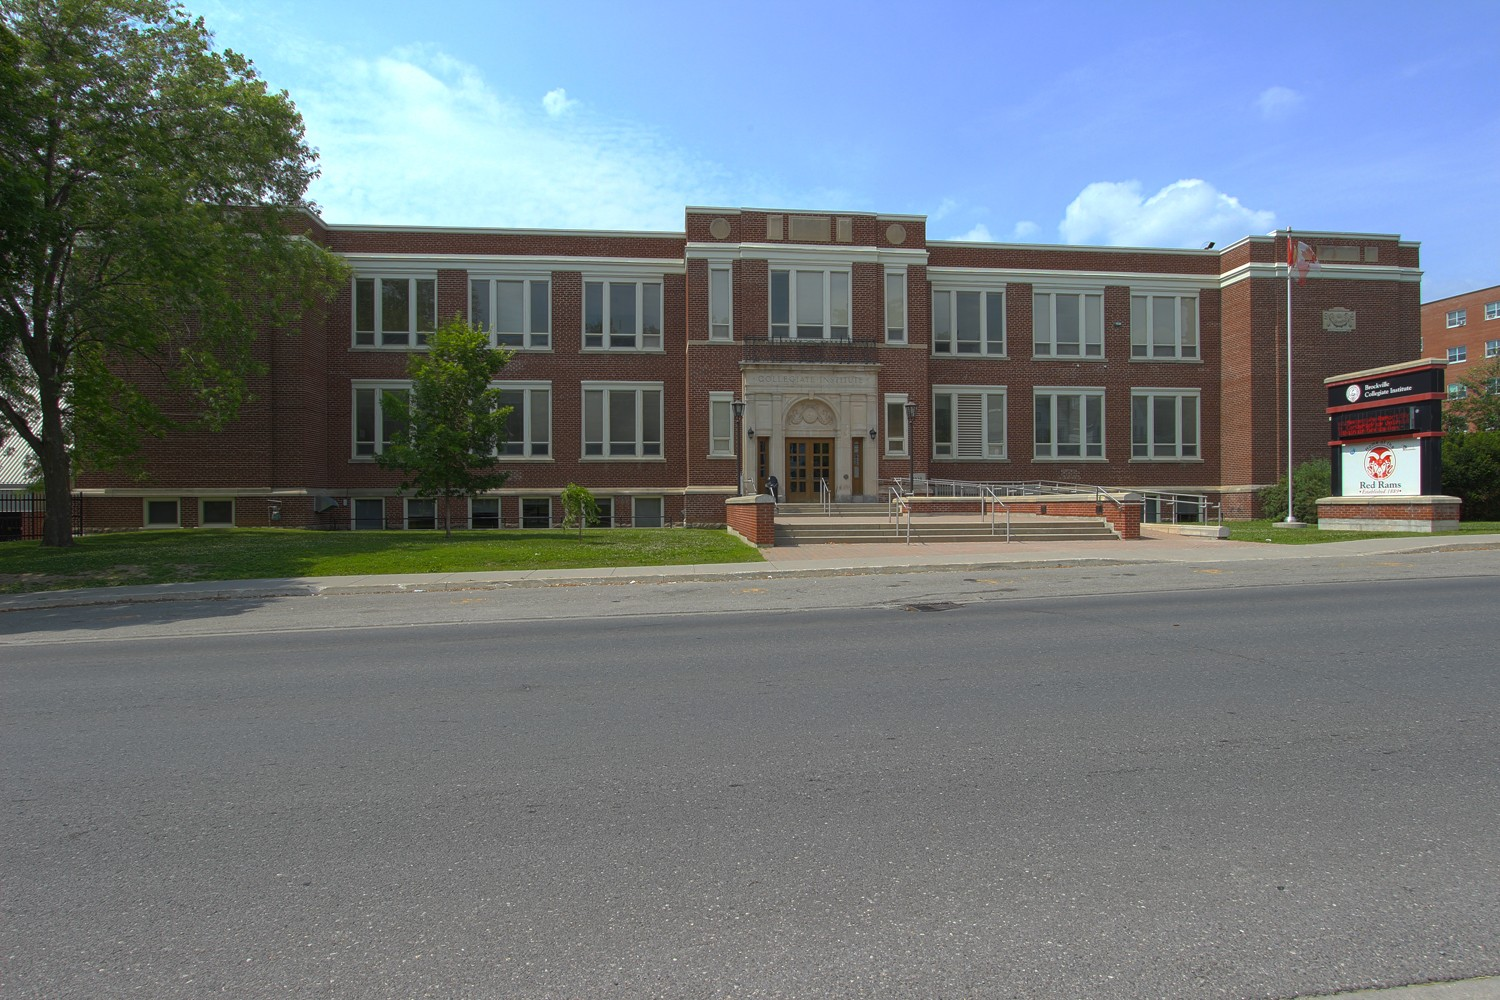 BCIVS Brockville Collegiate and Vocational School